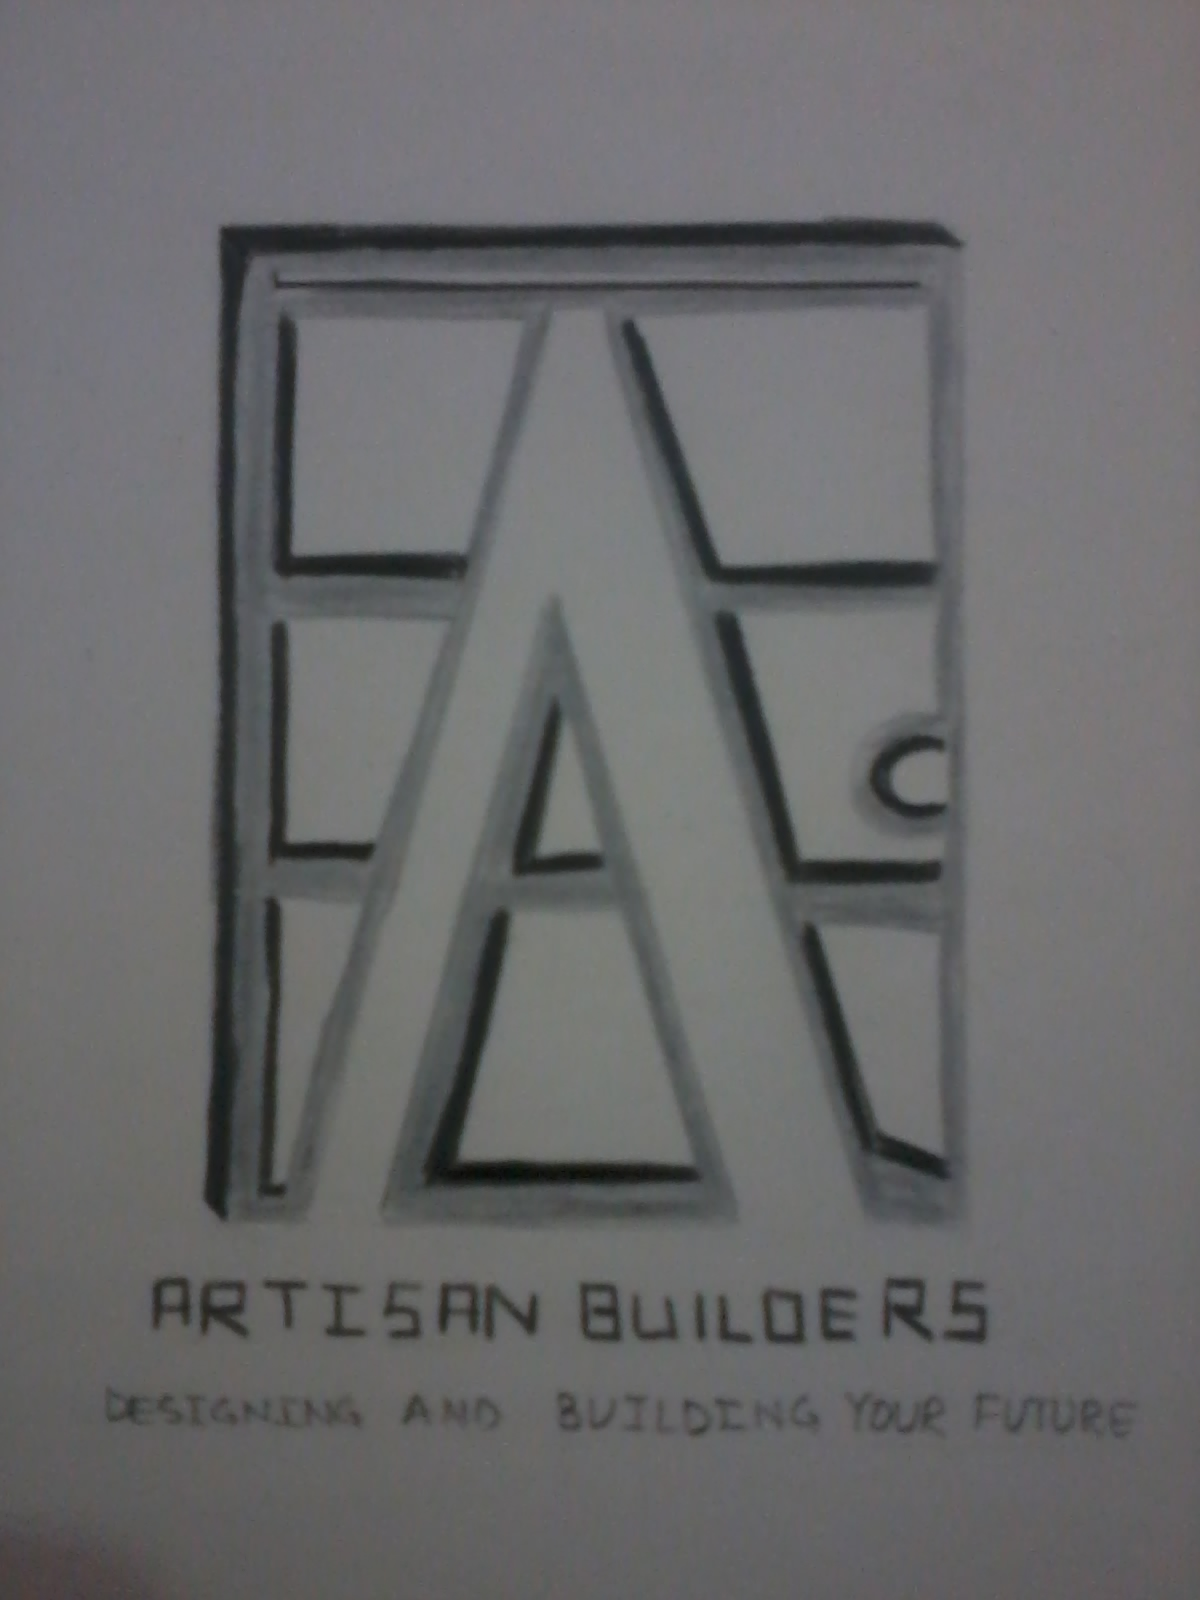 Logo Design by mediaproductionart - Entry No. 169 in the Logo Design Contest Captivating Logo Design for Artisan Builders.